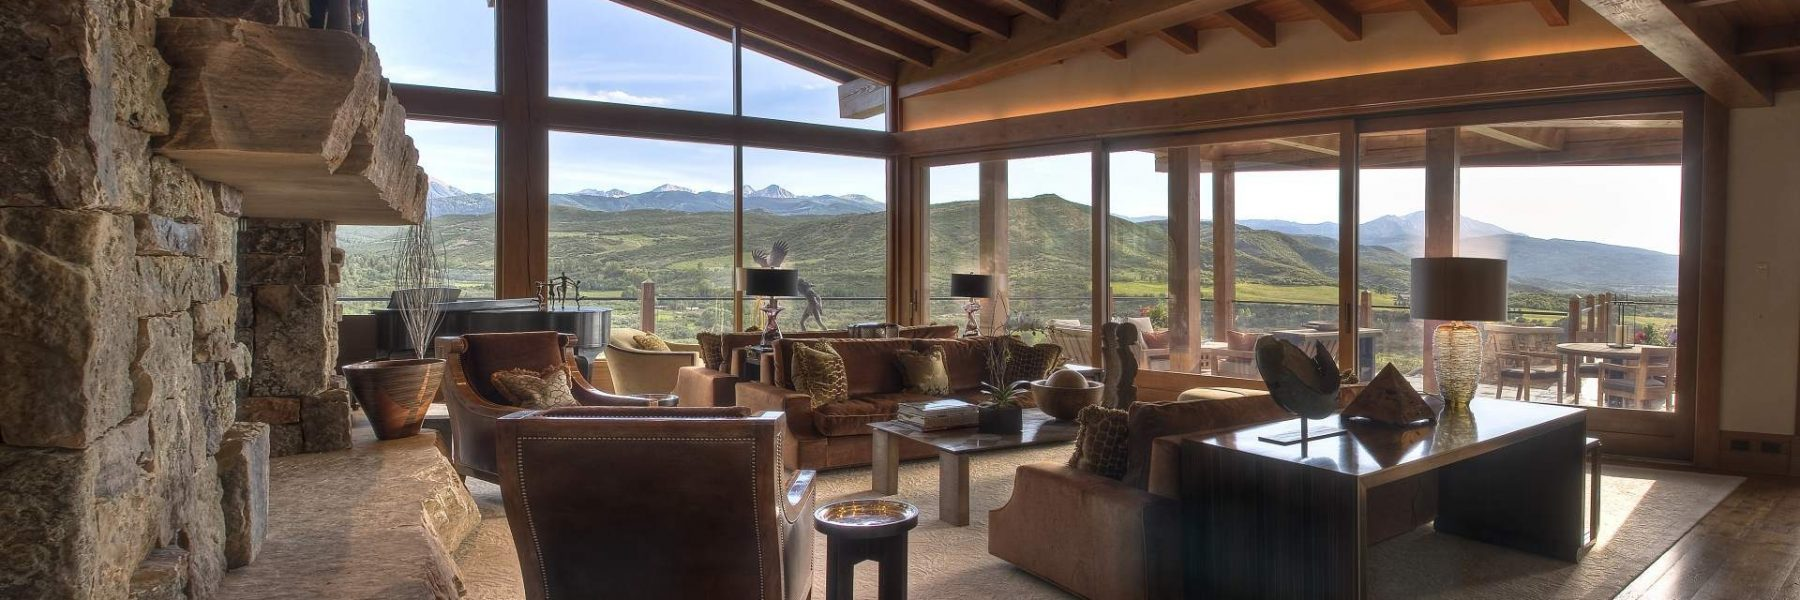 Aspen Snowmass Luxury Rentals Real Estate Aspen